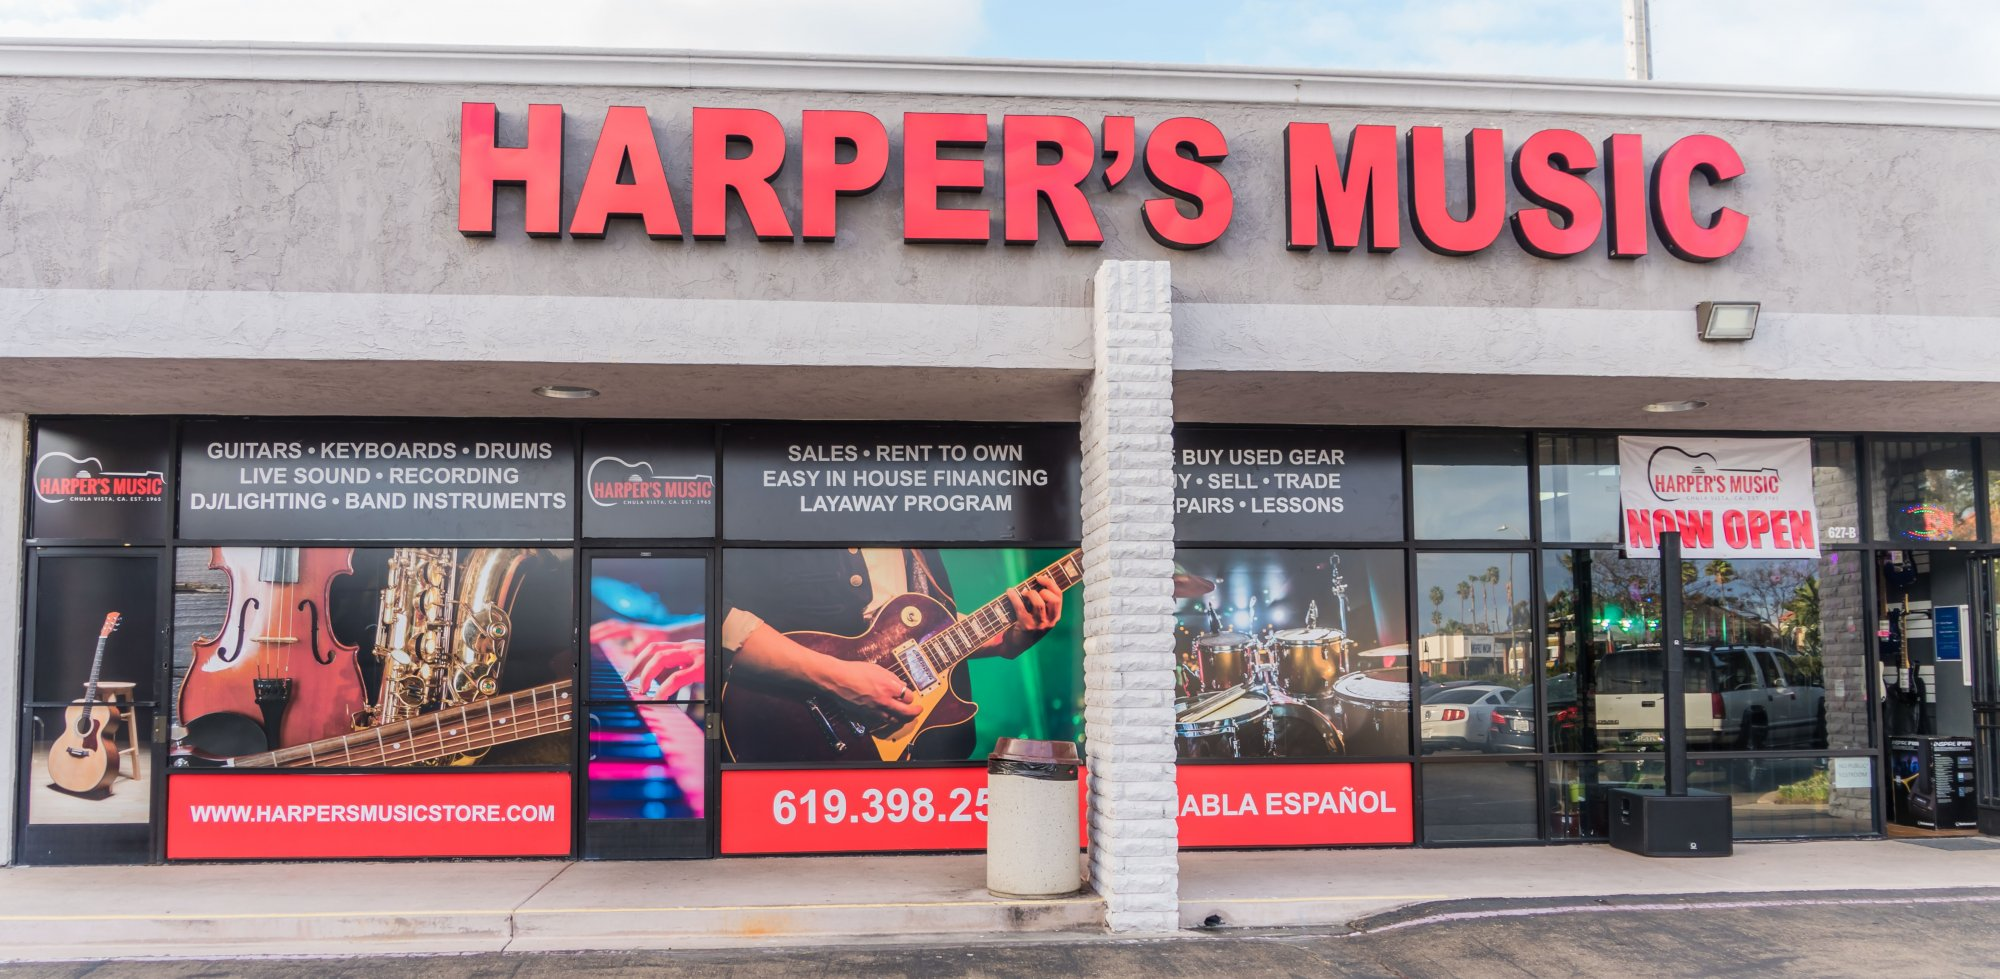 Harper's Music Store location in Chula Vista near San Diego